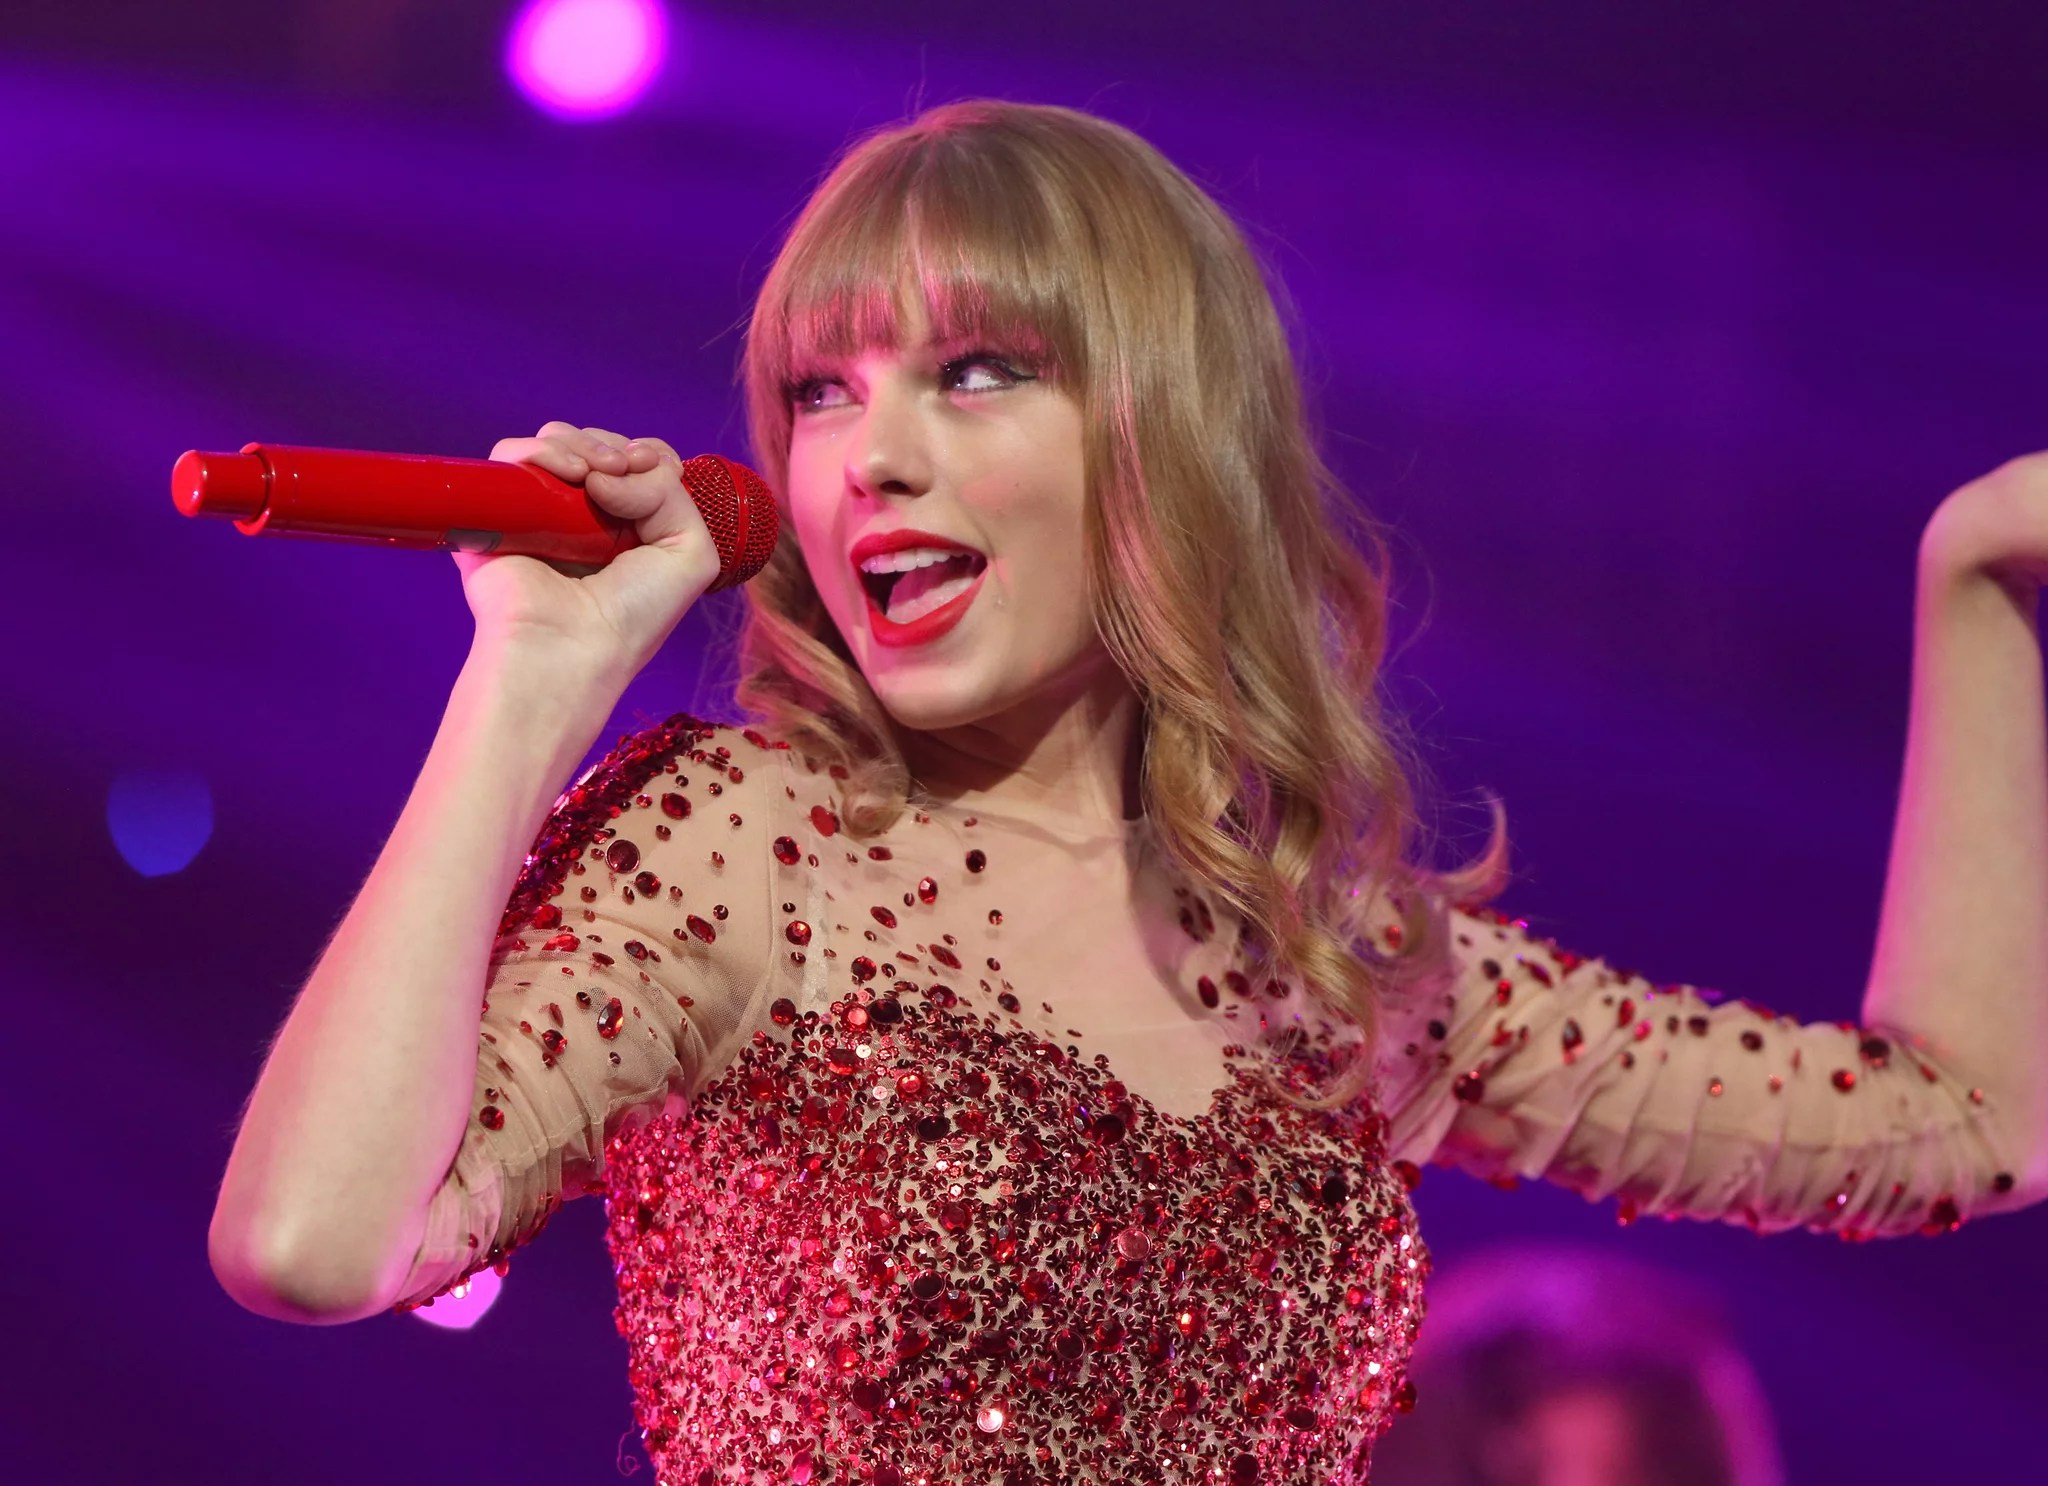 LOS ANGELES, CA - DECEMBER 01:  Singer Taylor Swift performs onstage during KIIS FM's 2012 Jingle Ball at Nokia Theatre L.A. Live on December 1, 2012 in Los Angeles, California.  (Photo by Christopher Polk/Getty Images for Clear Channel)